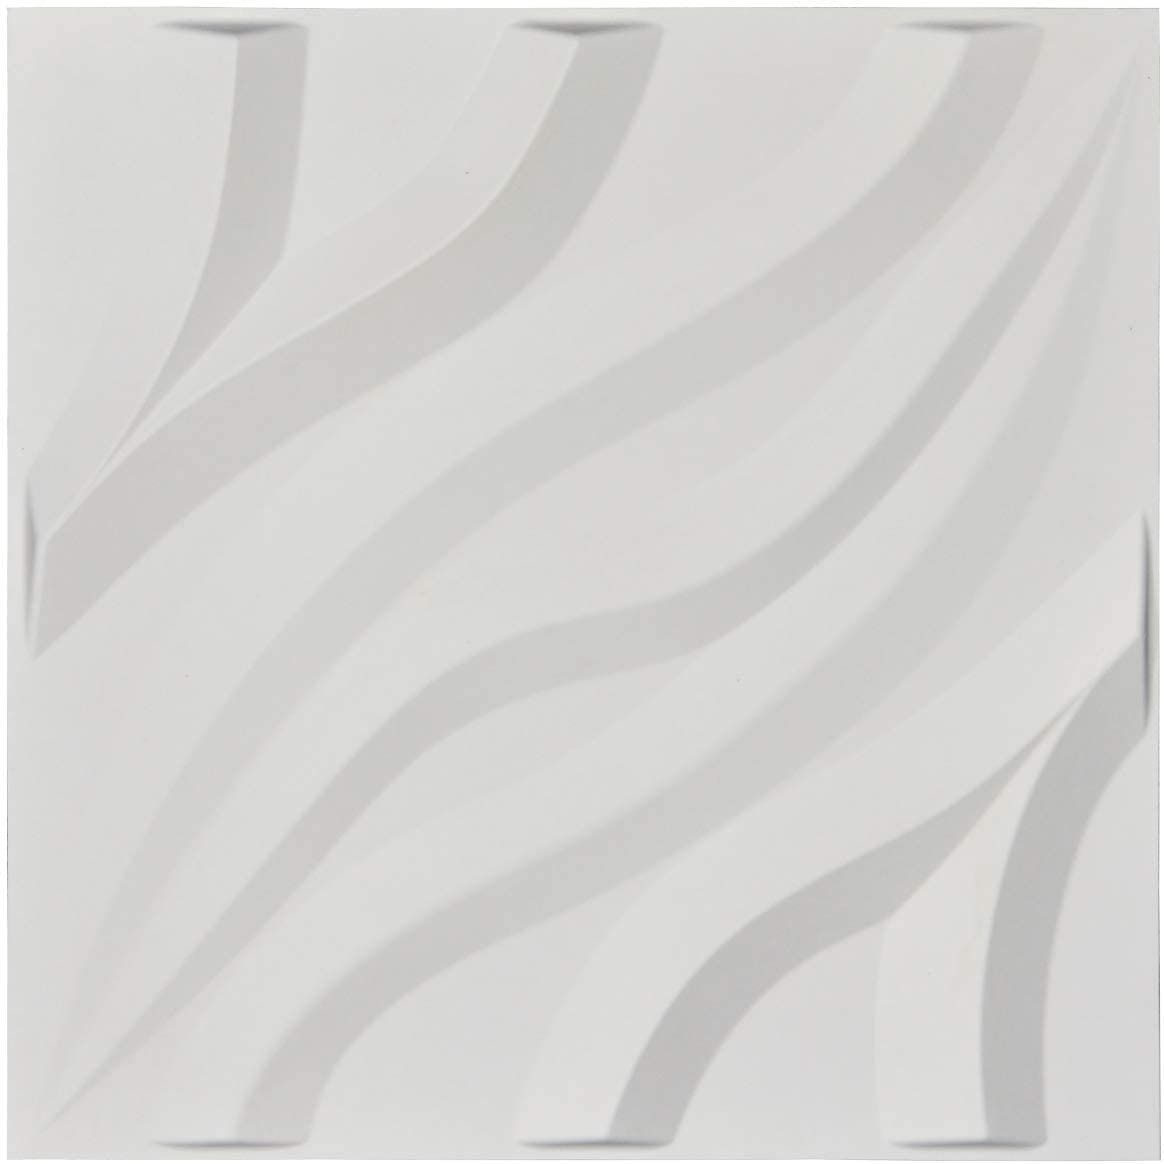 A21083 - Decorative 3D Wavy Wall Panels, 19.7